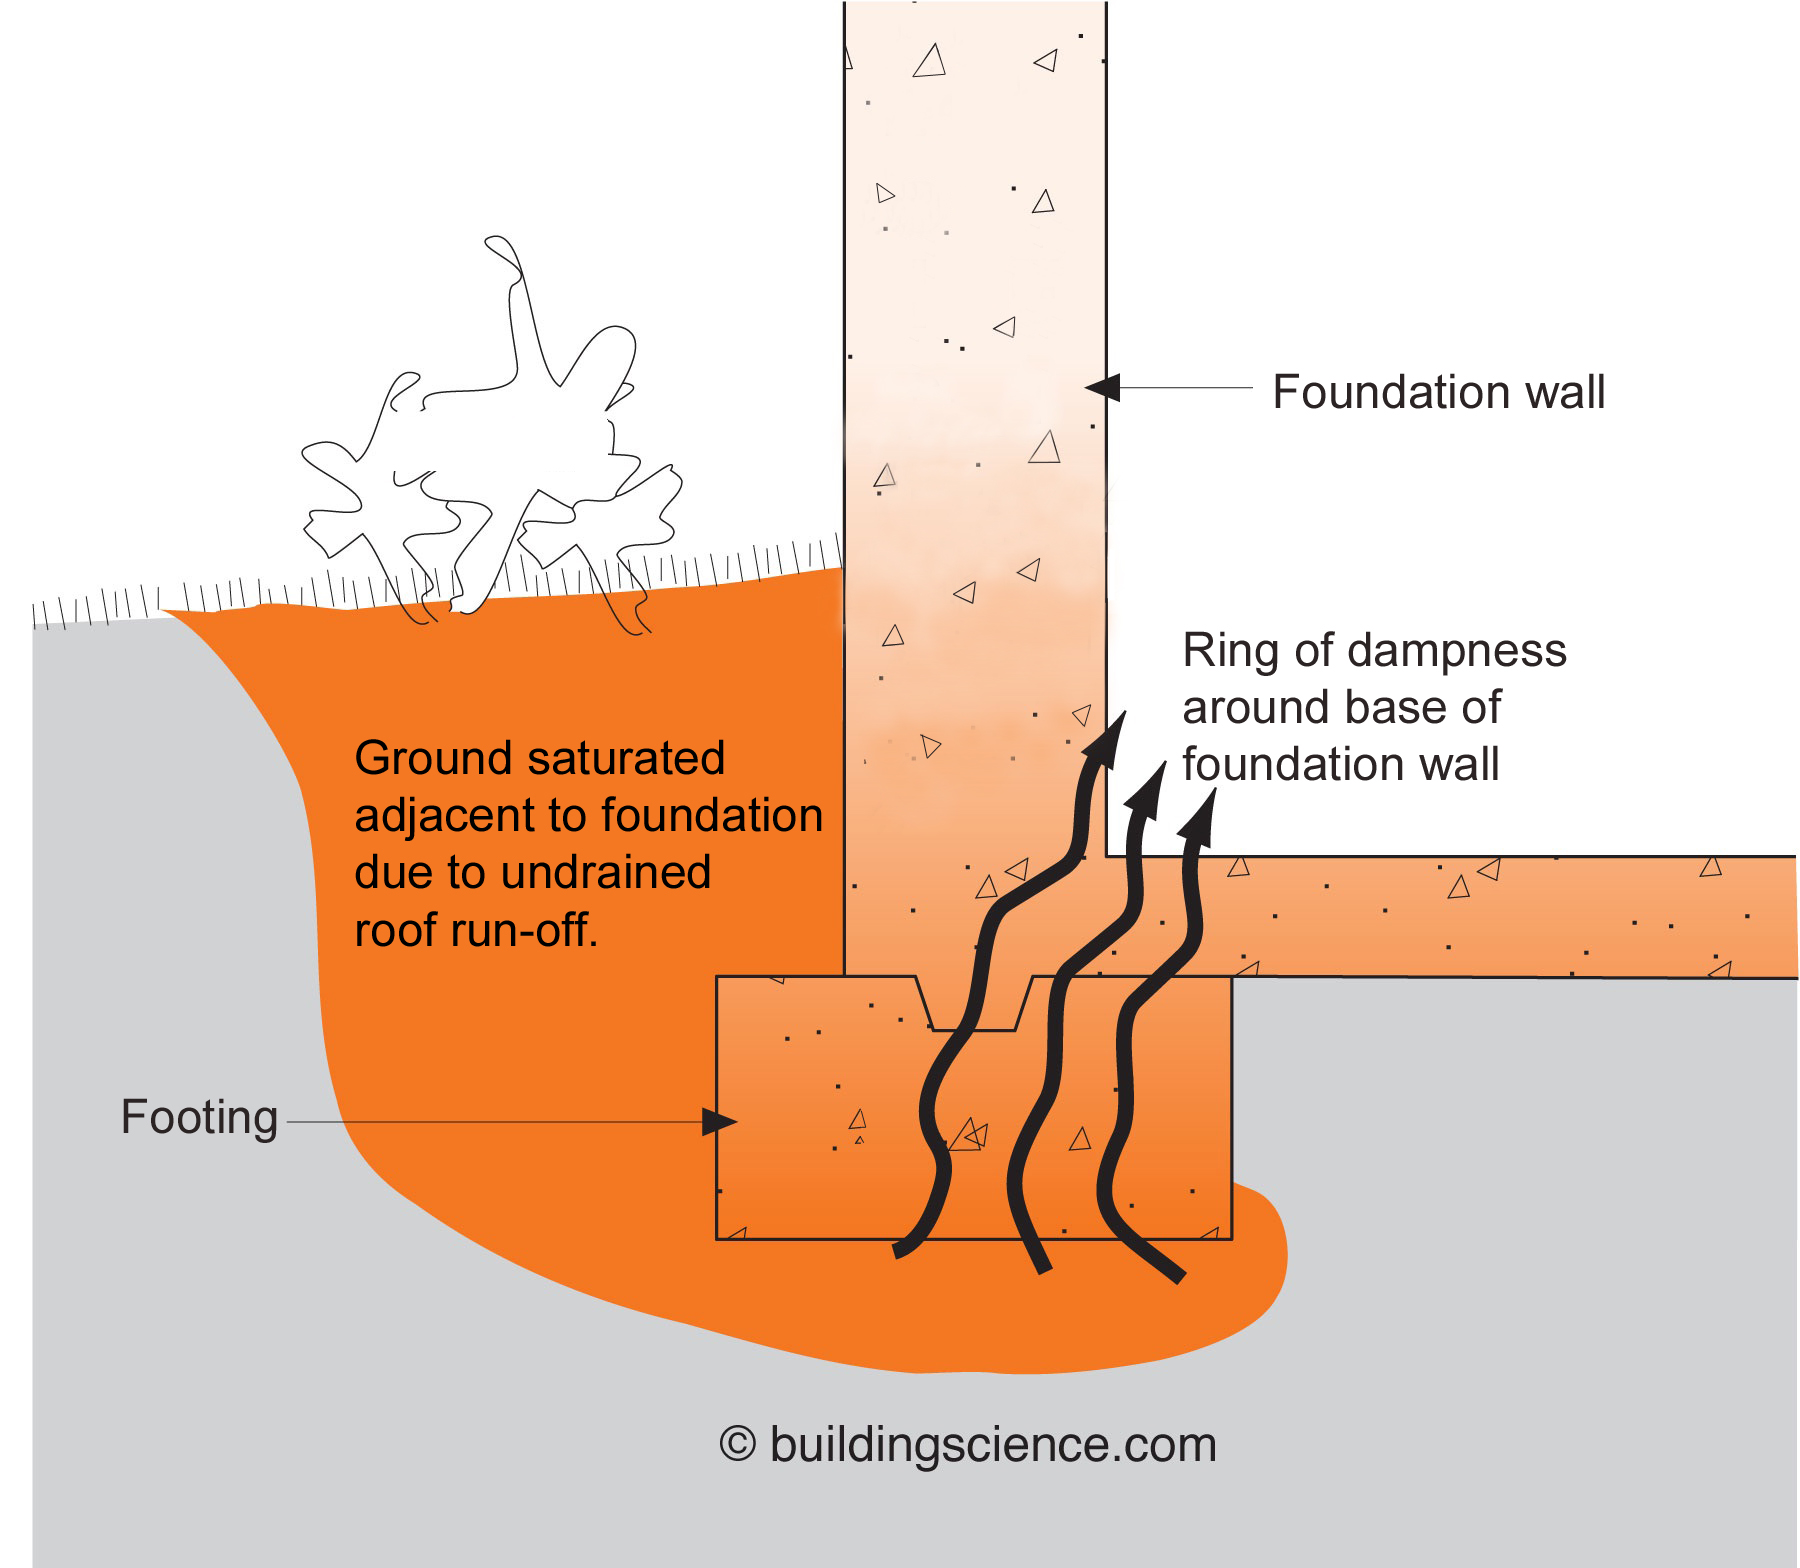 Saturated ground water. If not drained away from the house, the sheer volume of the water coming off a roof can quickly saturate the soil and wick through the foundation into the interior of a building